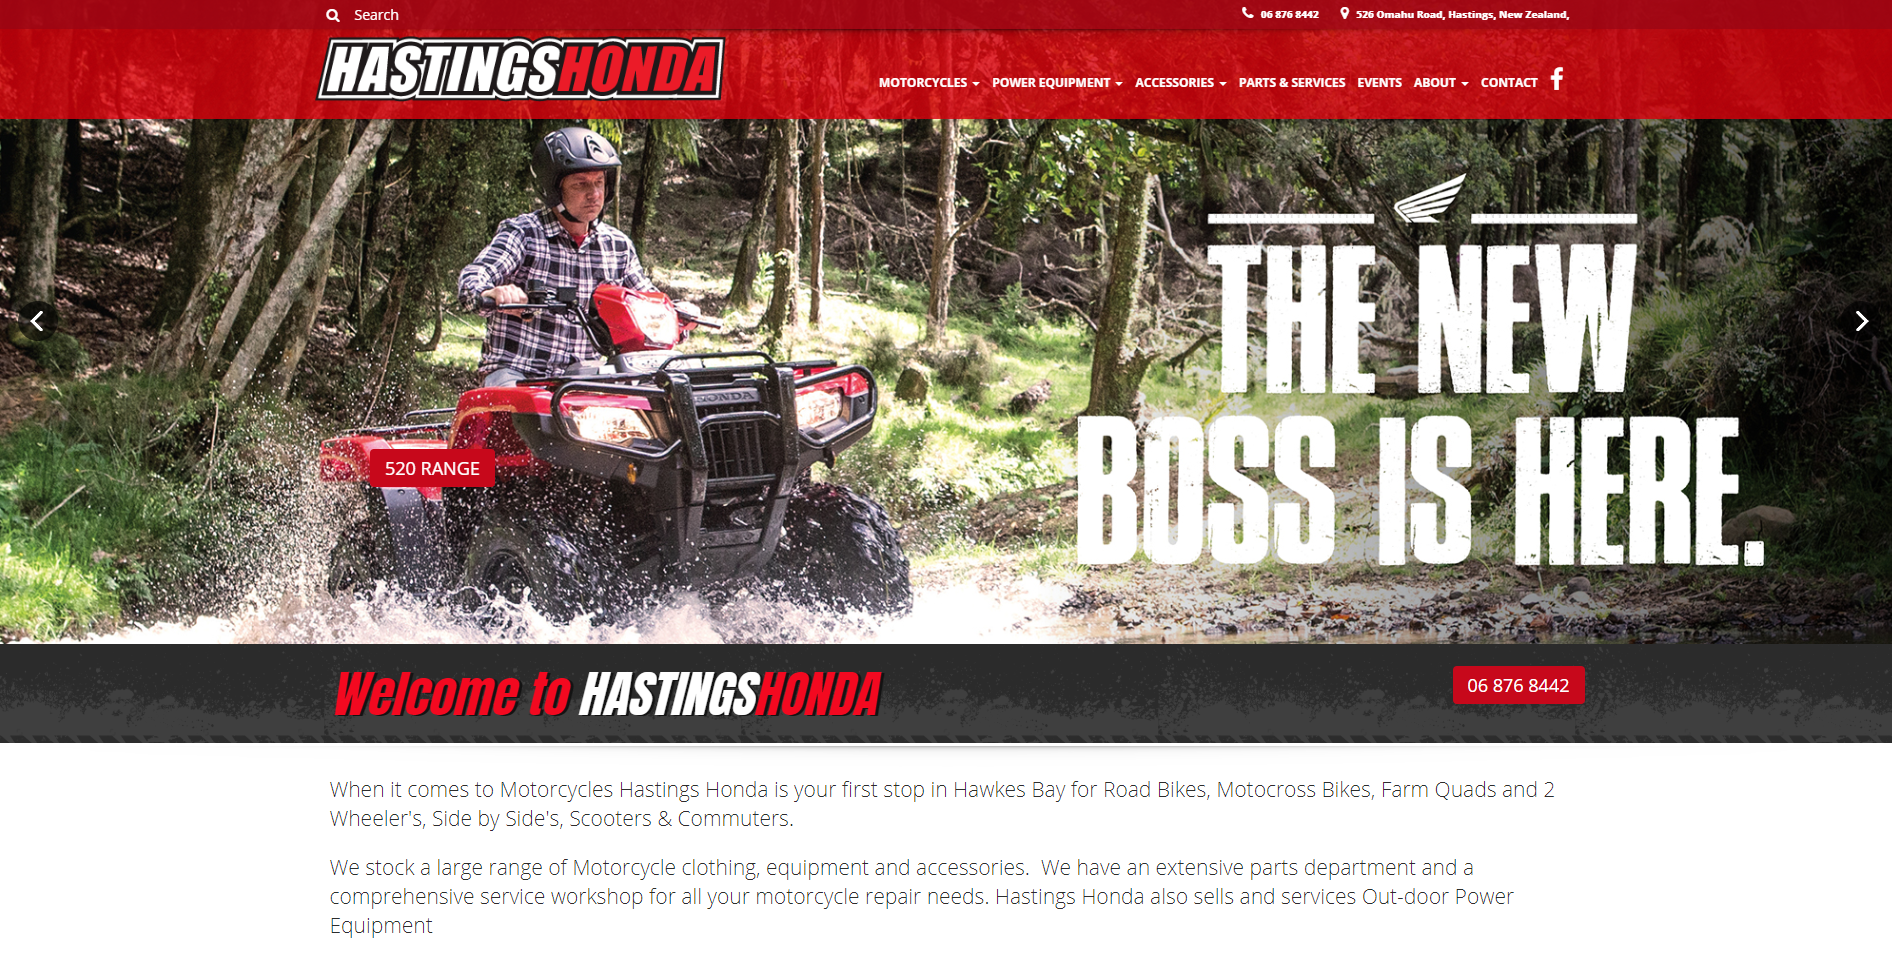 hastings honda home website